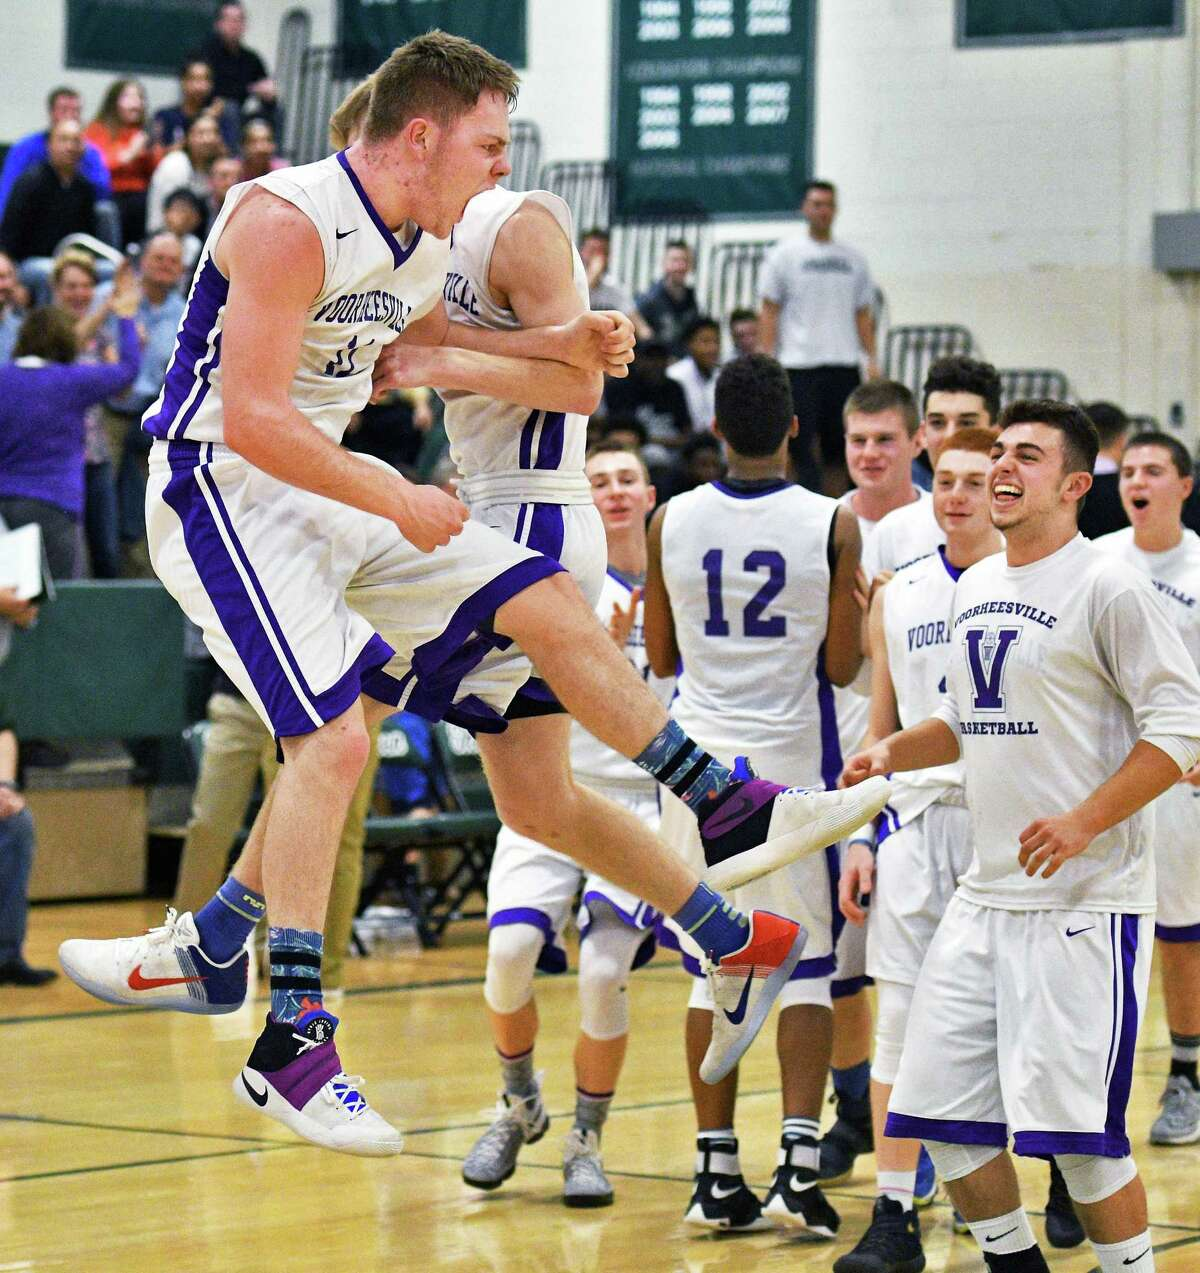 Voorheesville's #11 Ryan Daly and team mates celebrate his tie-breaking winning shot as the best Broadalbin-Perth in their Class B quarterfinal at Shenendehowa High Friday Feb. 24, 2017 in Clifton Park, NY. (John Carl D'Annibale / Times Union)